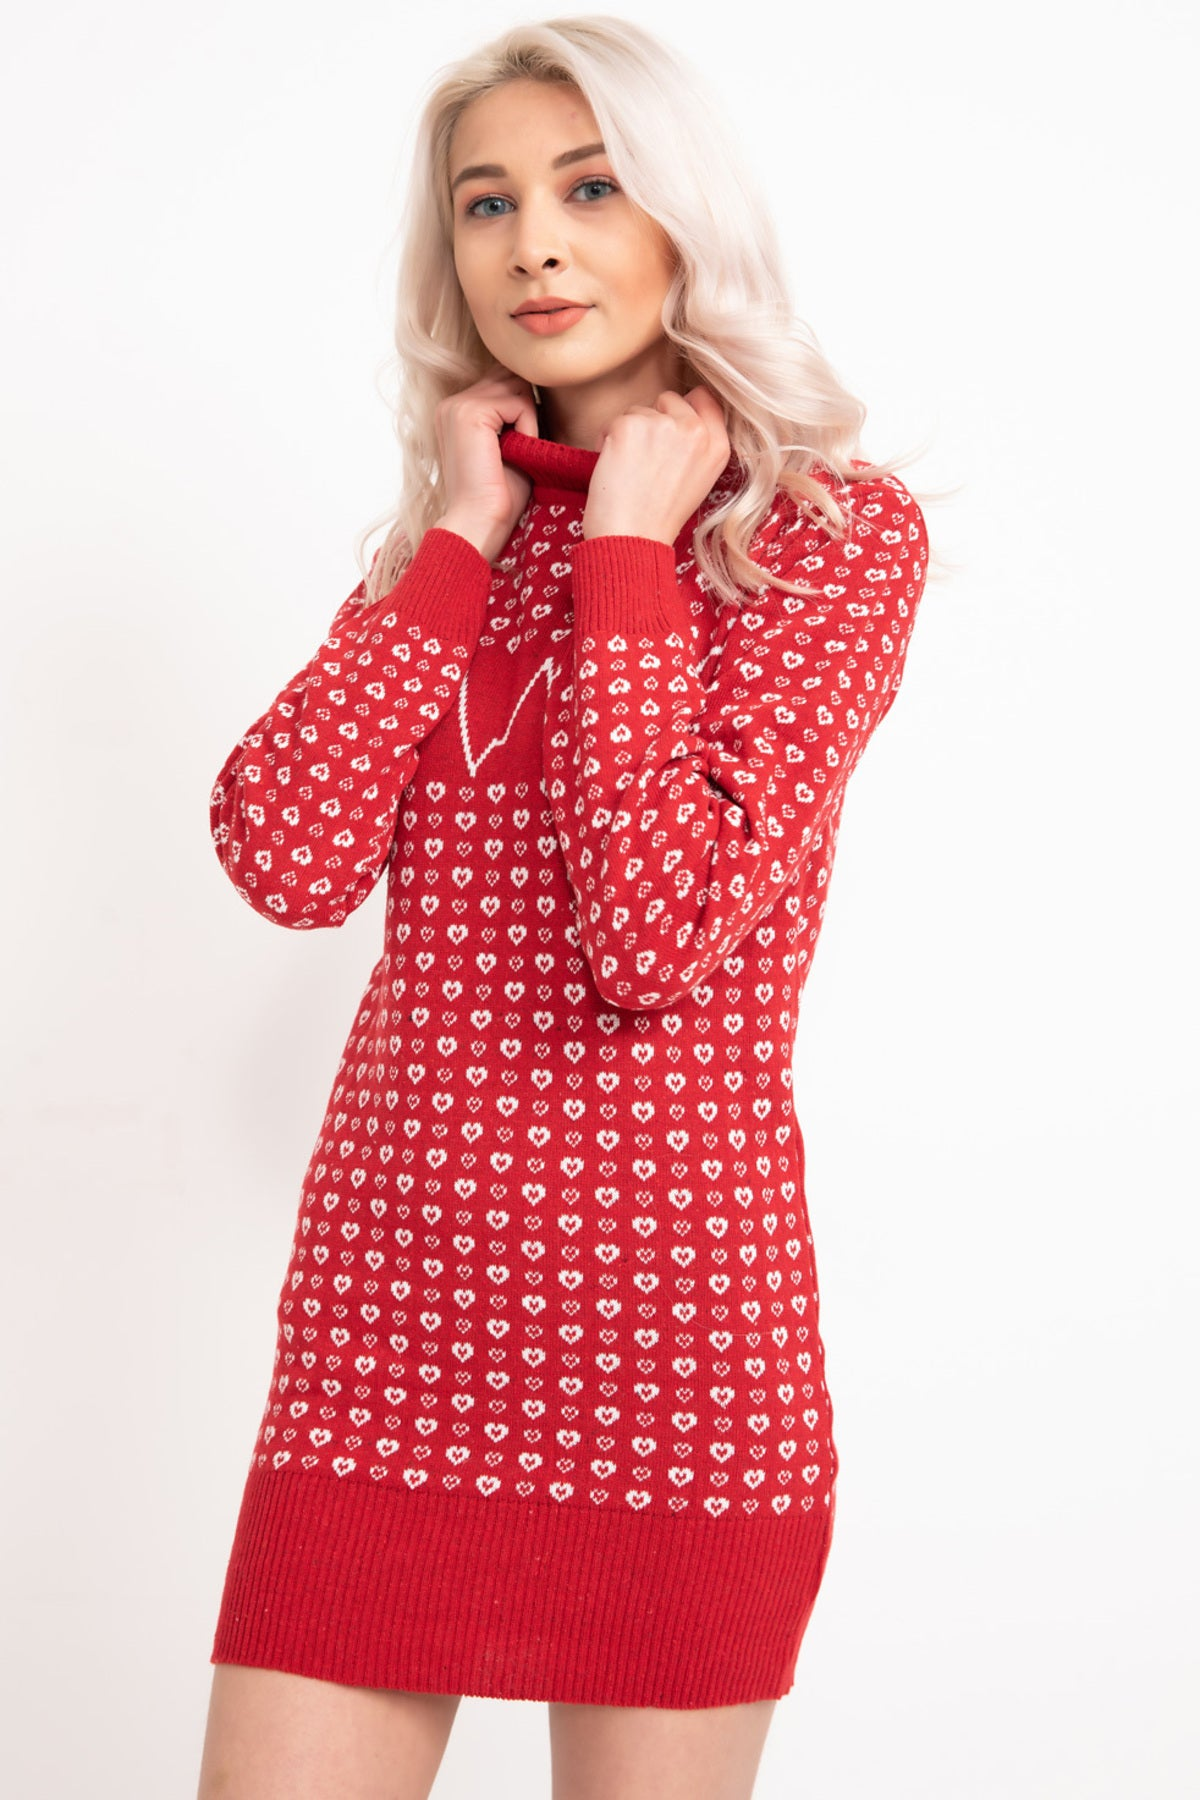 Red Heart Printed Knitwear Tunic